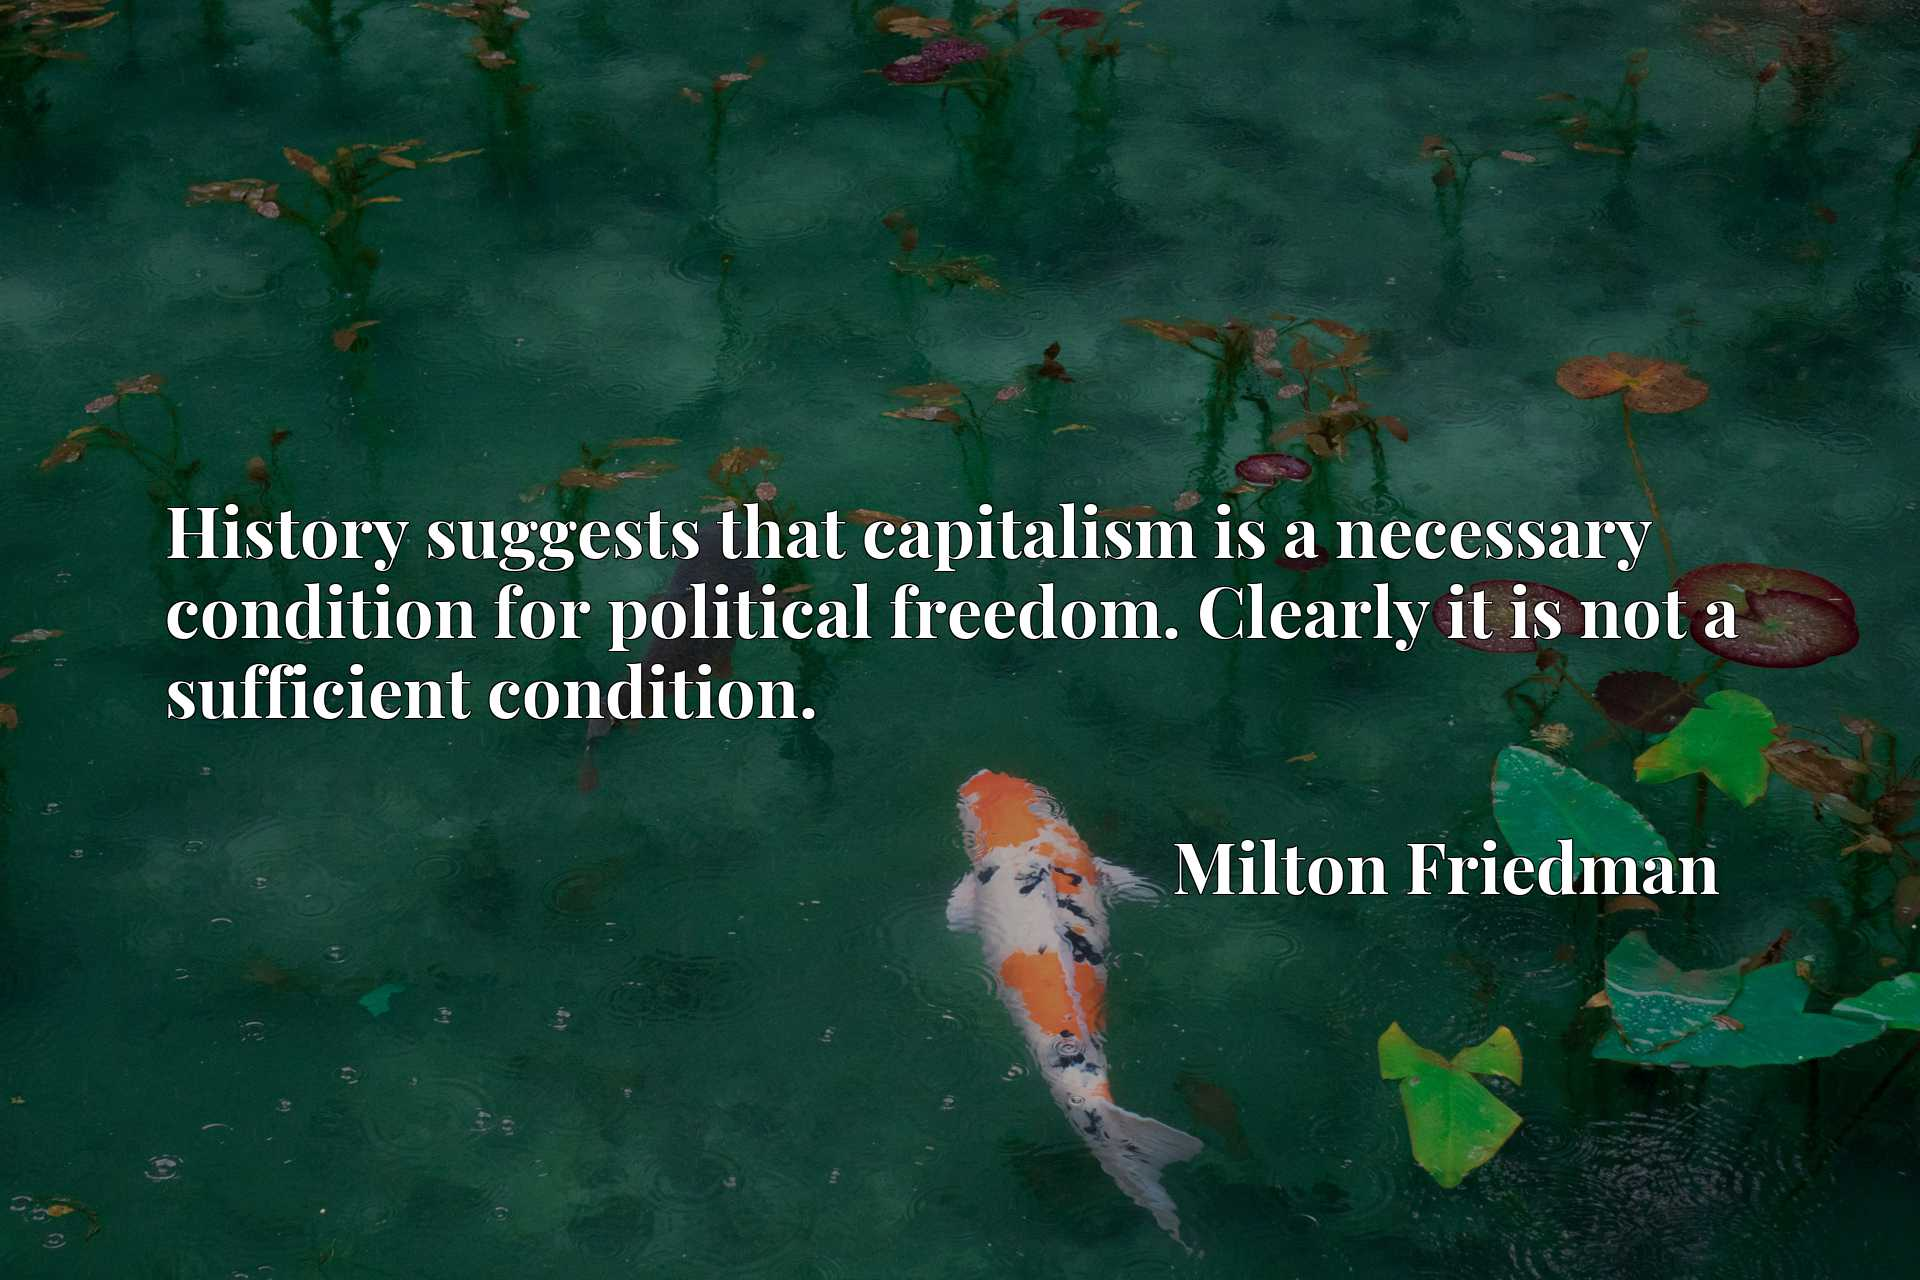 History suggests that capitalism is a necessary condition for political freedom. Clearly it is not a sufficient condition.